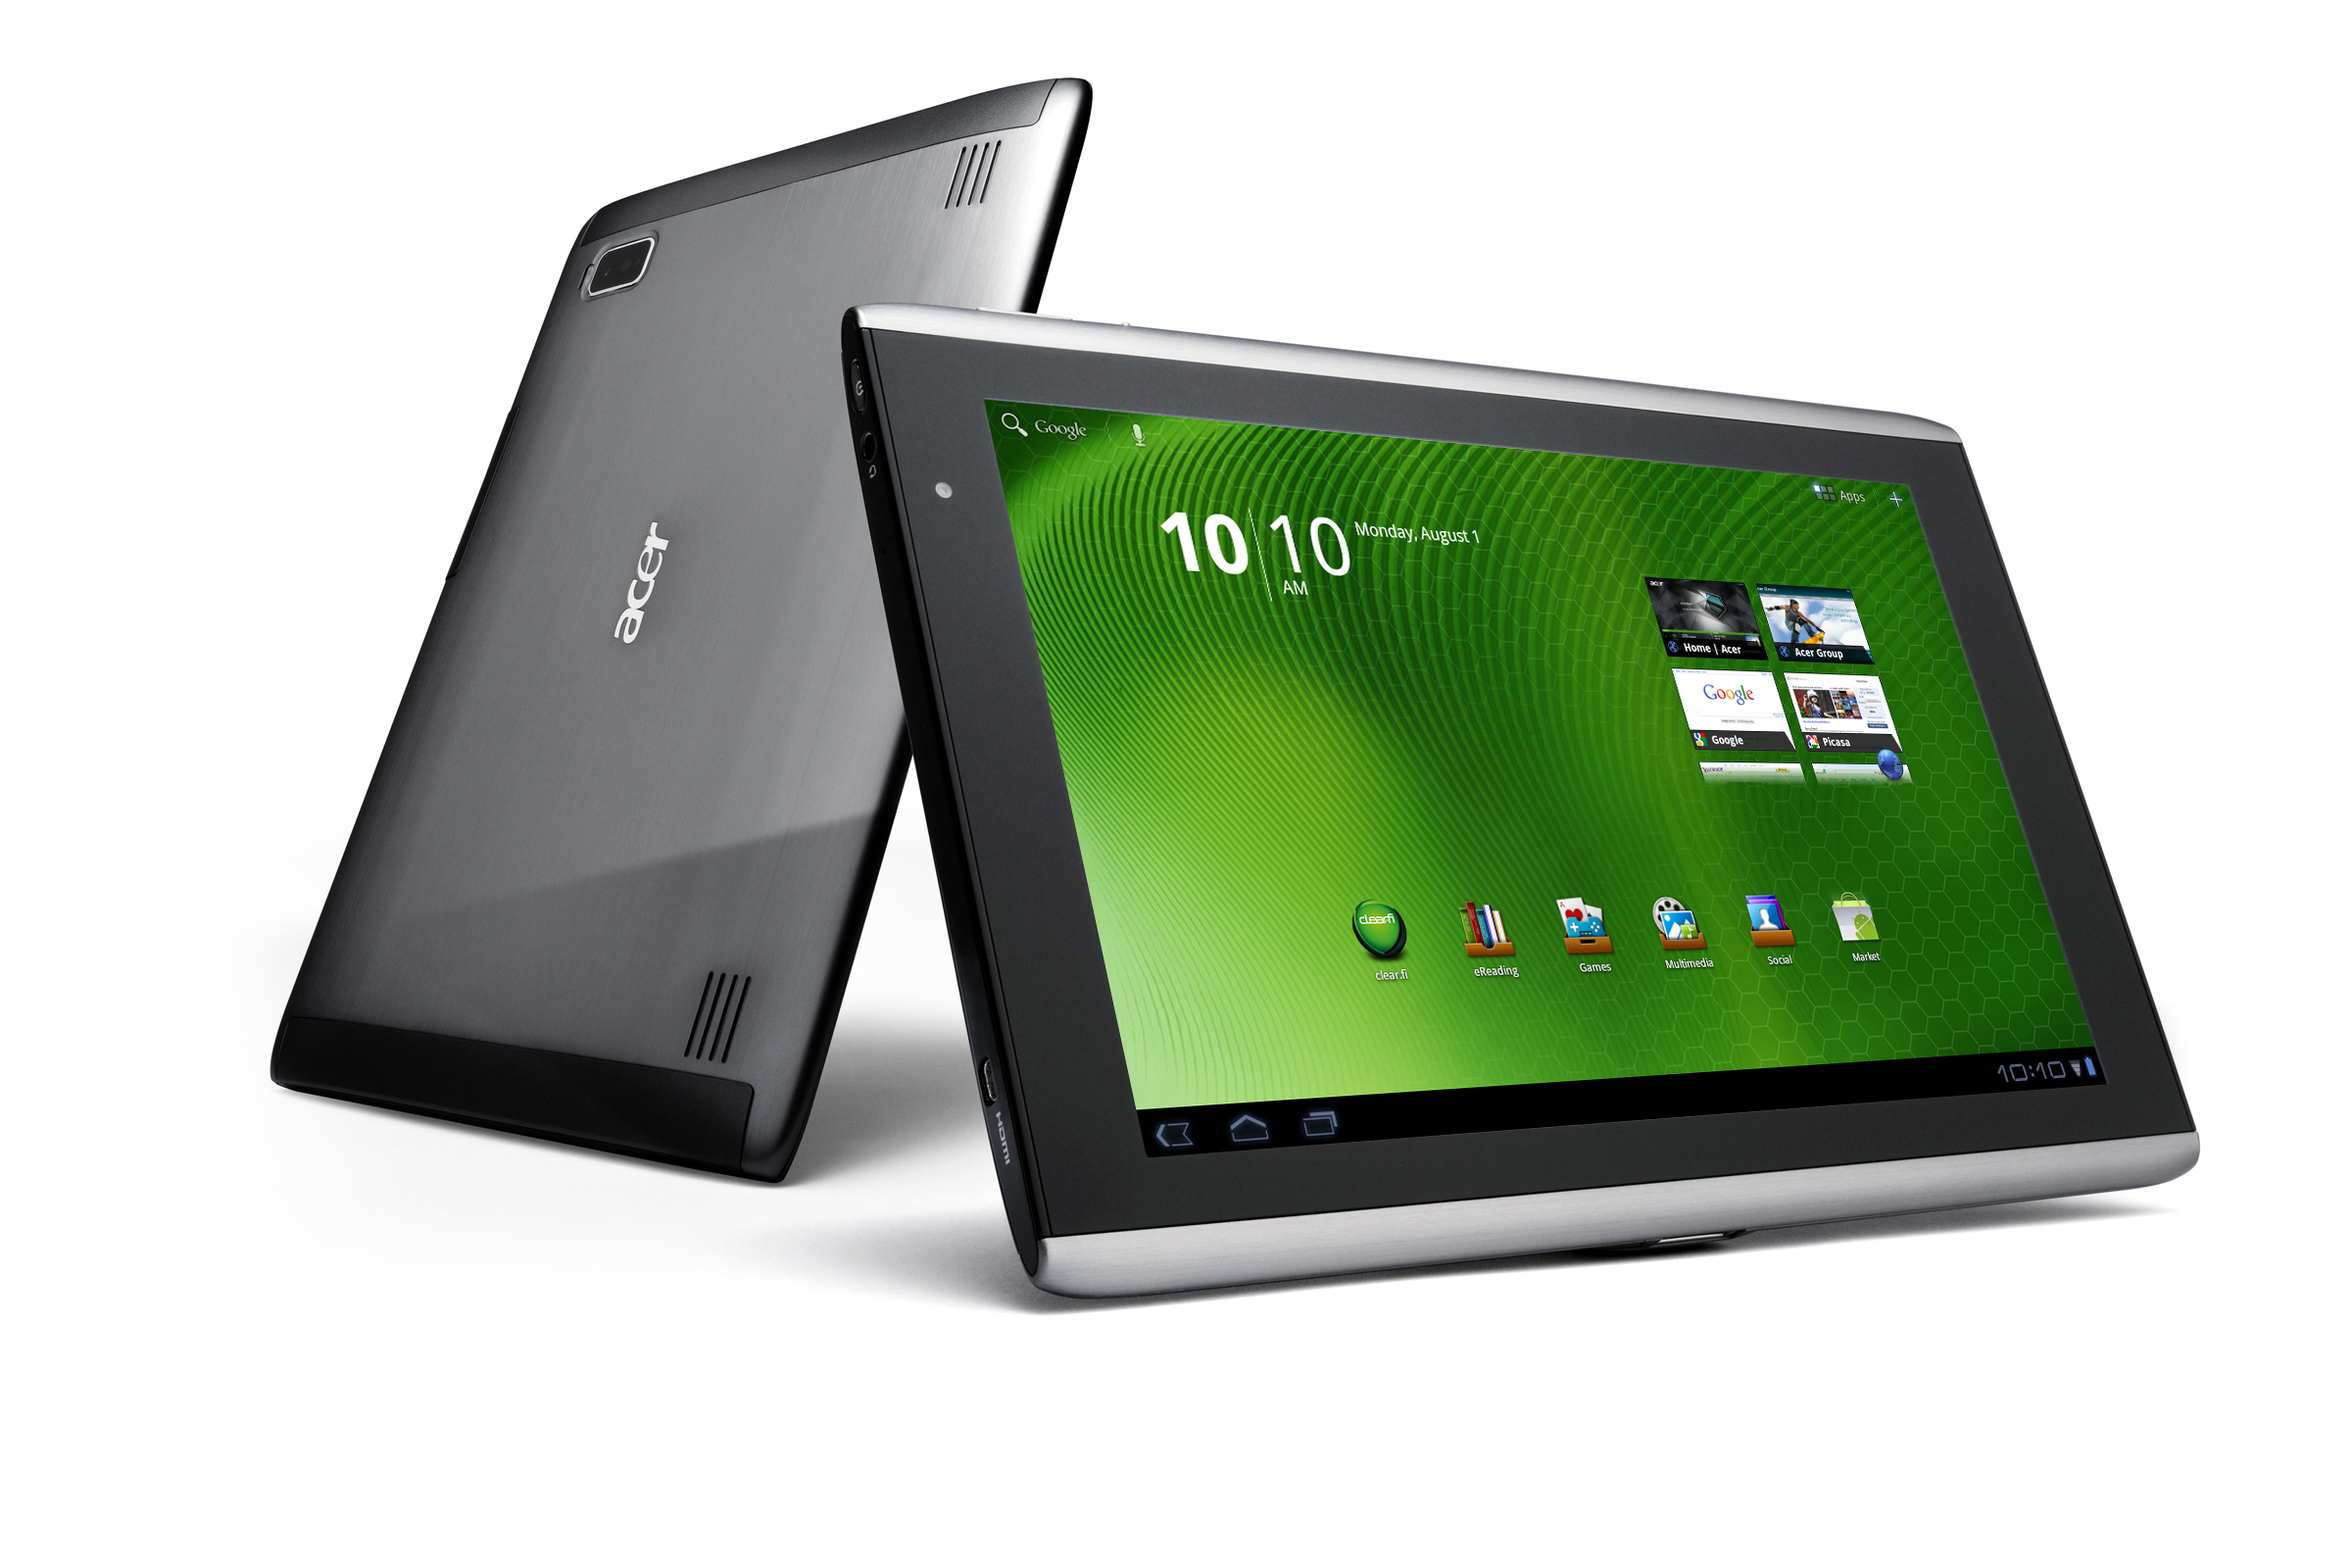 Acer iconia tab a500 recovery mode - 9f47e